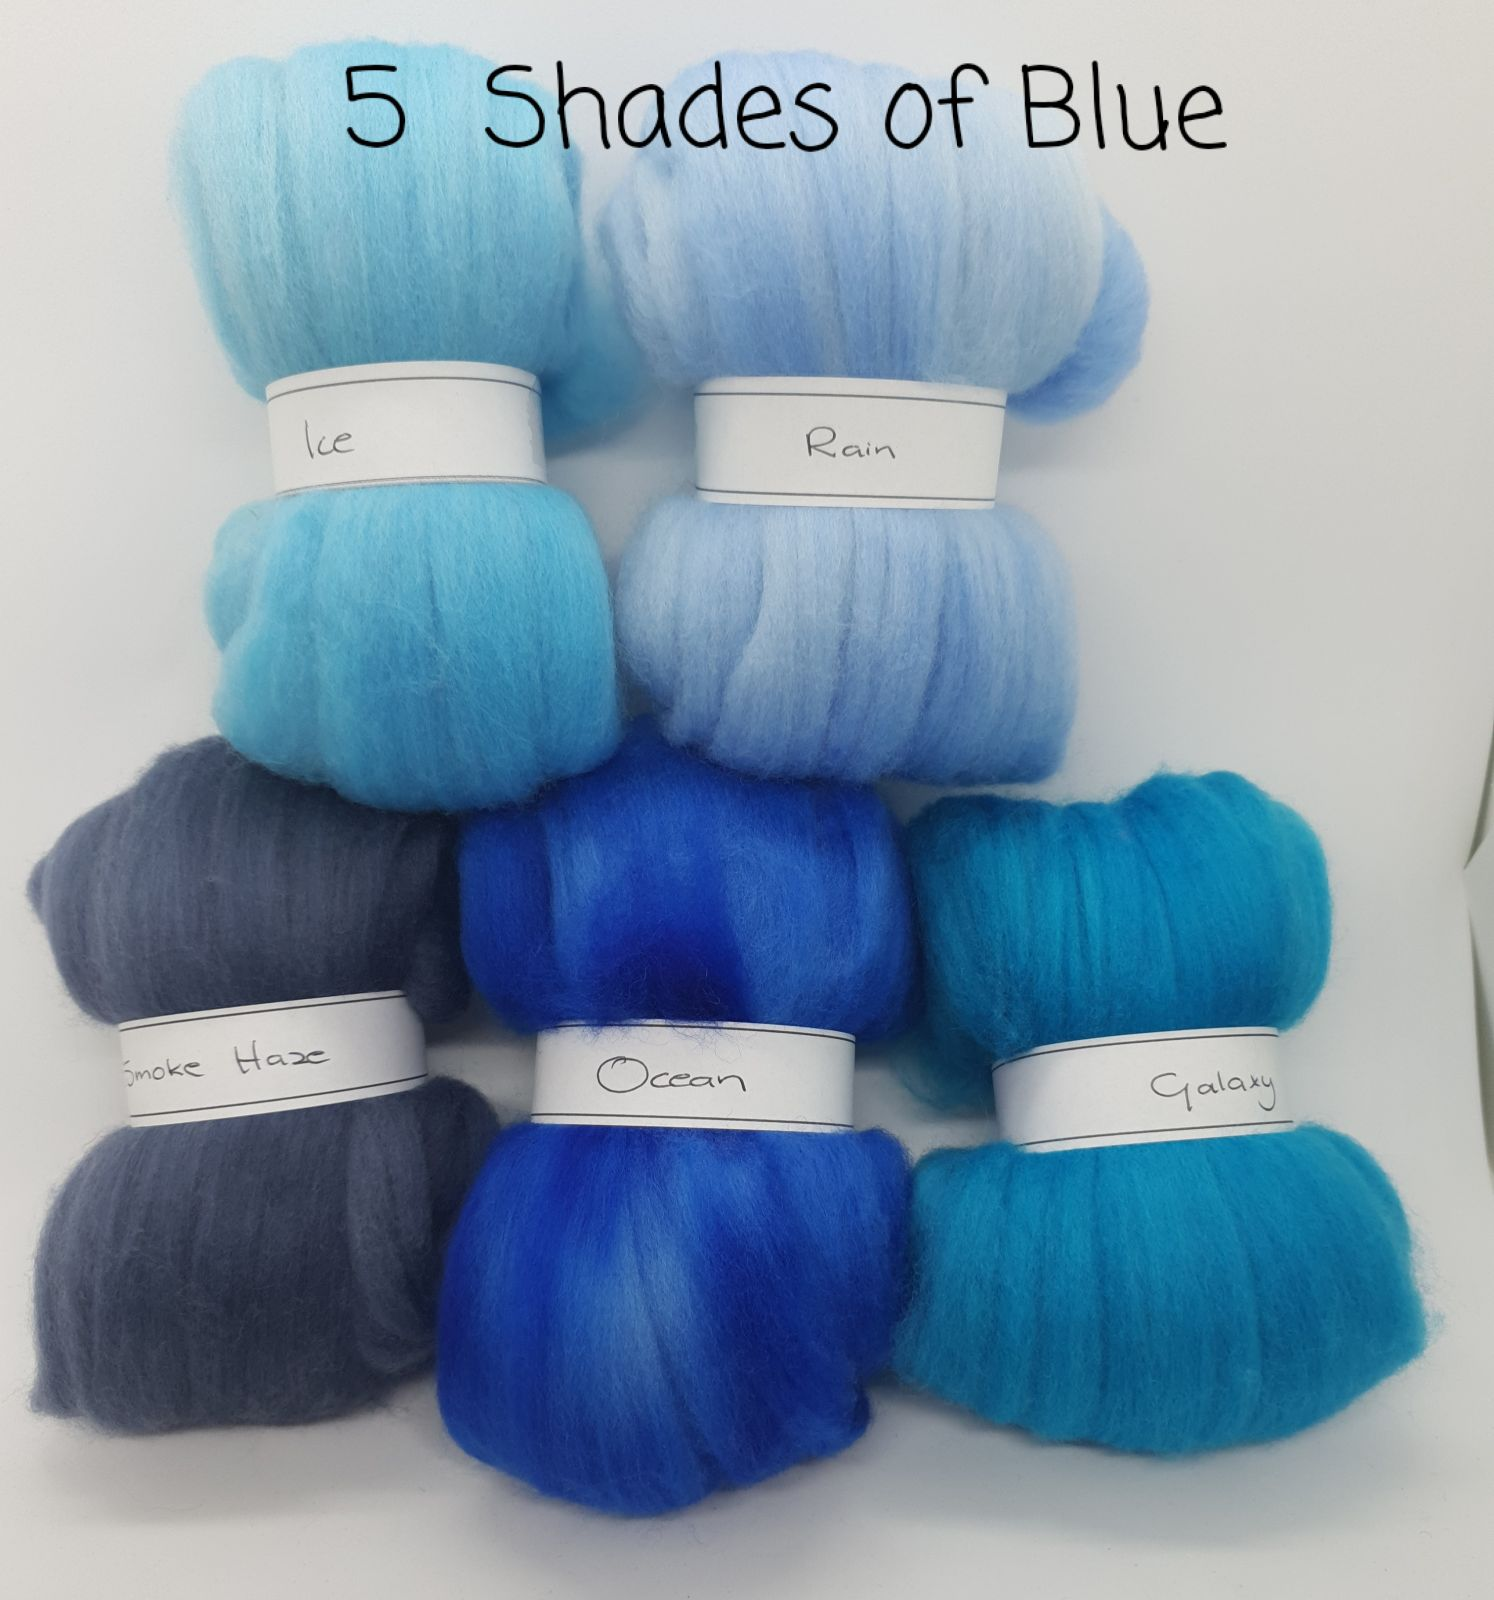 5 Shades of Blue